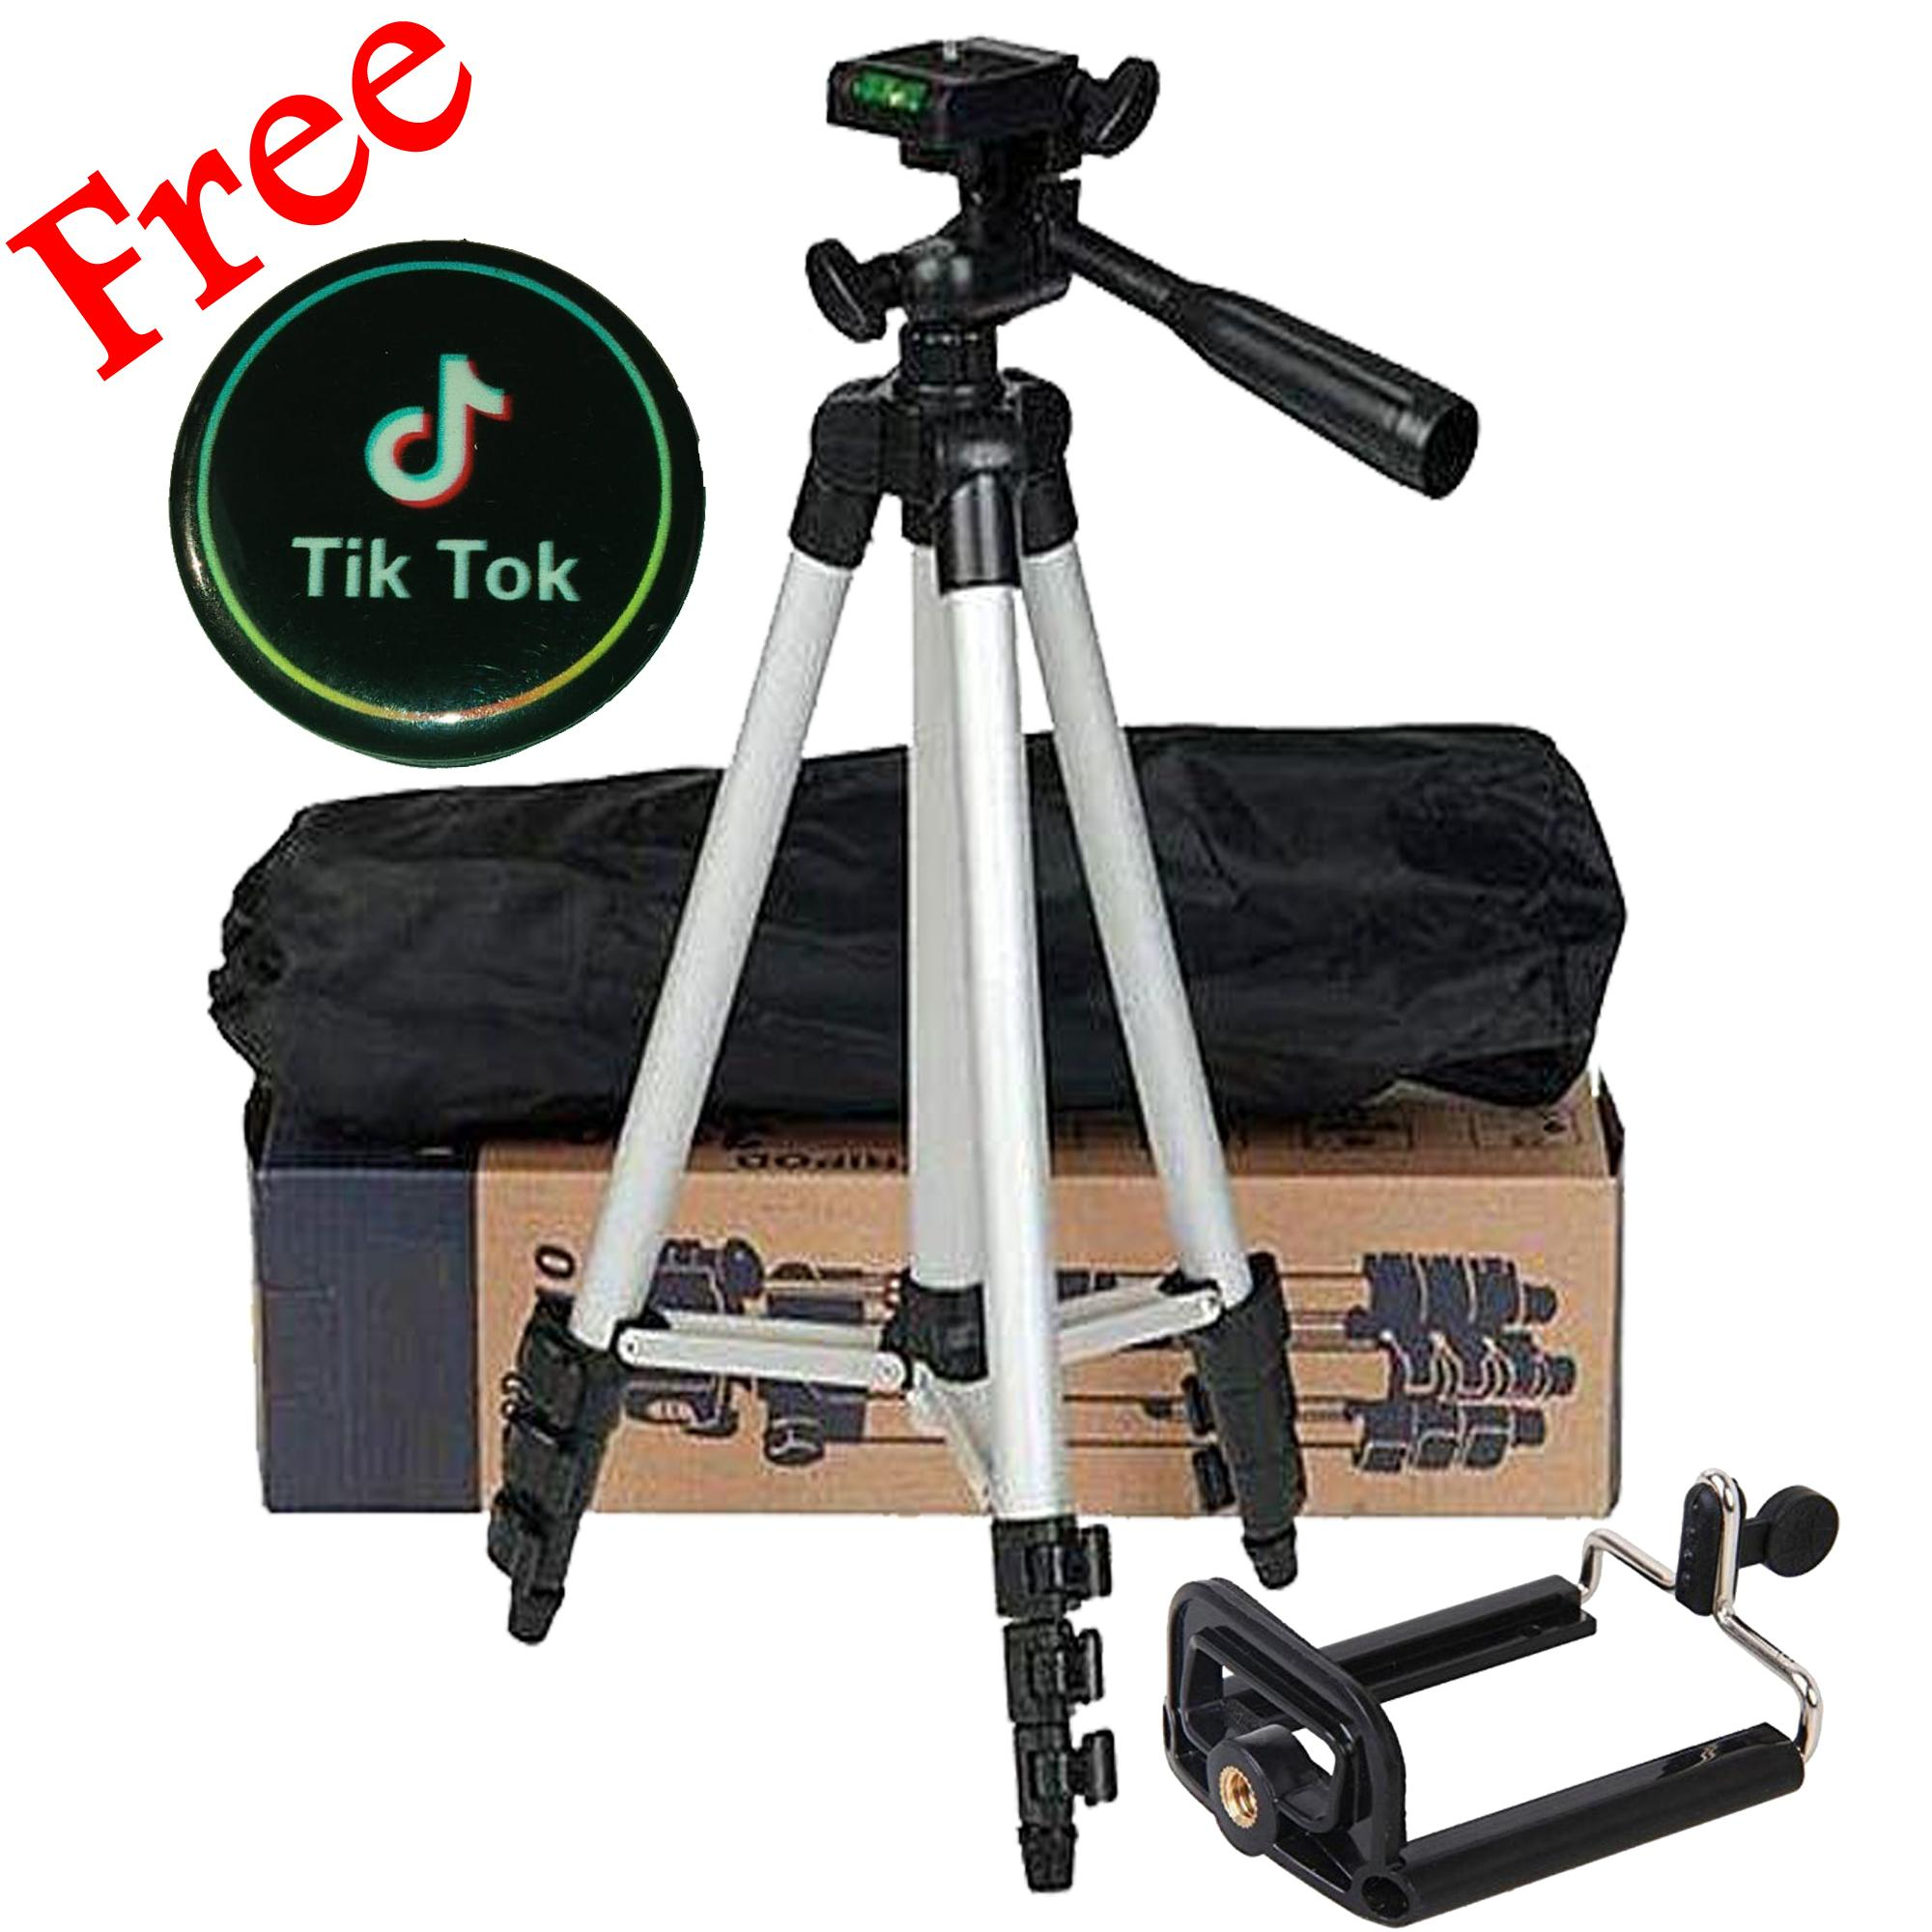 Tik Tok Tripod Camera Stand For Making Videos In Mobile Phone 3110 With  Mobile Holder